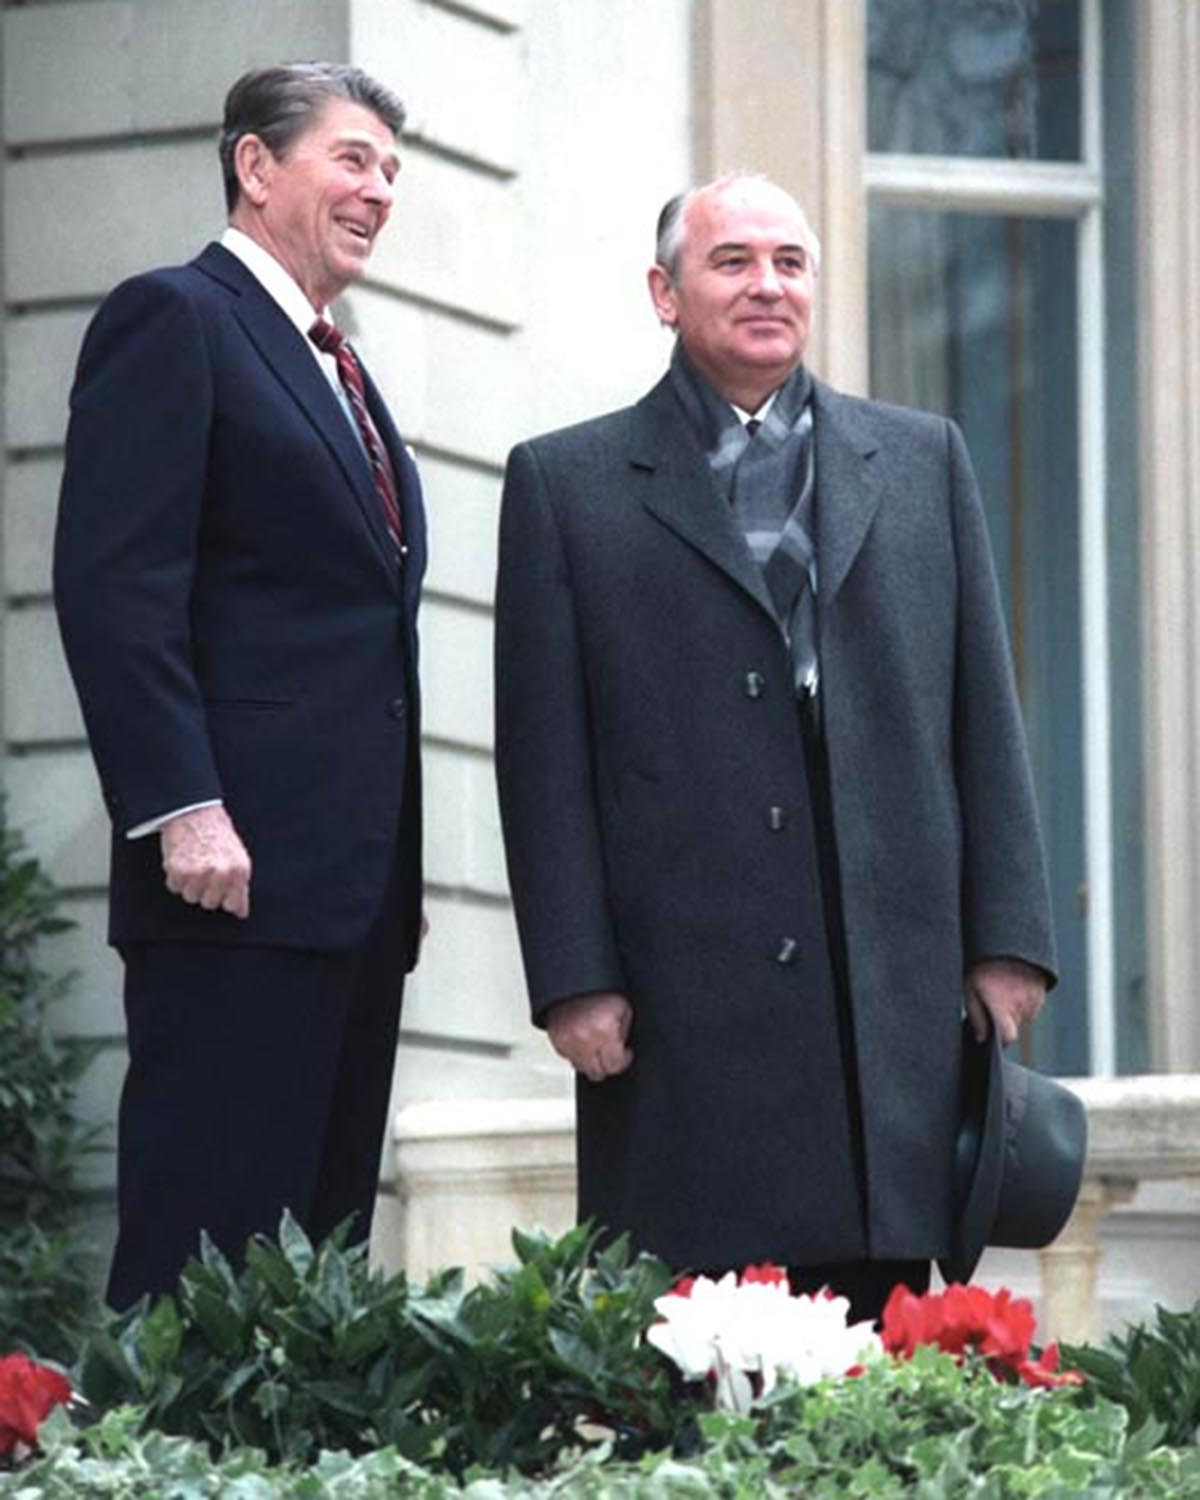 President Ronald Reagan smiles during his first meeting with Mikhail Gorbachev at Fleur D'Eau during the Geneva Summit in Switzerland on Nov. 19,1985. Photo courtesy of Wikimedia Commons